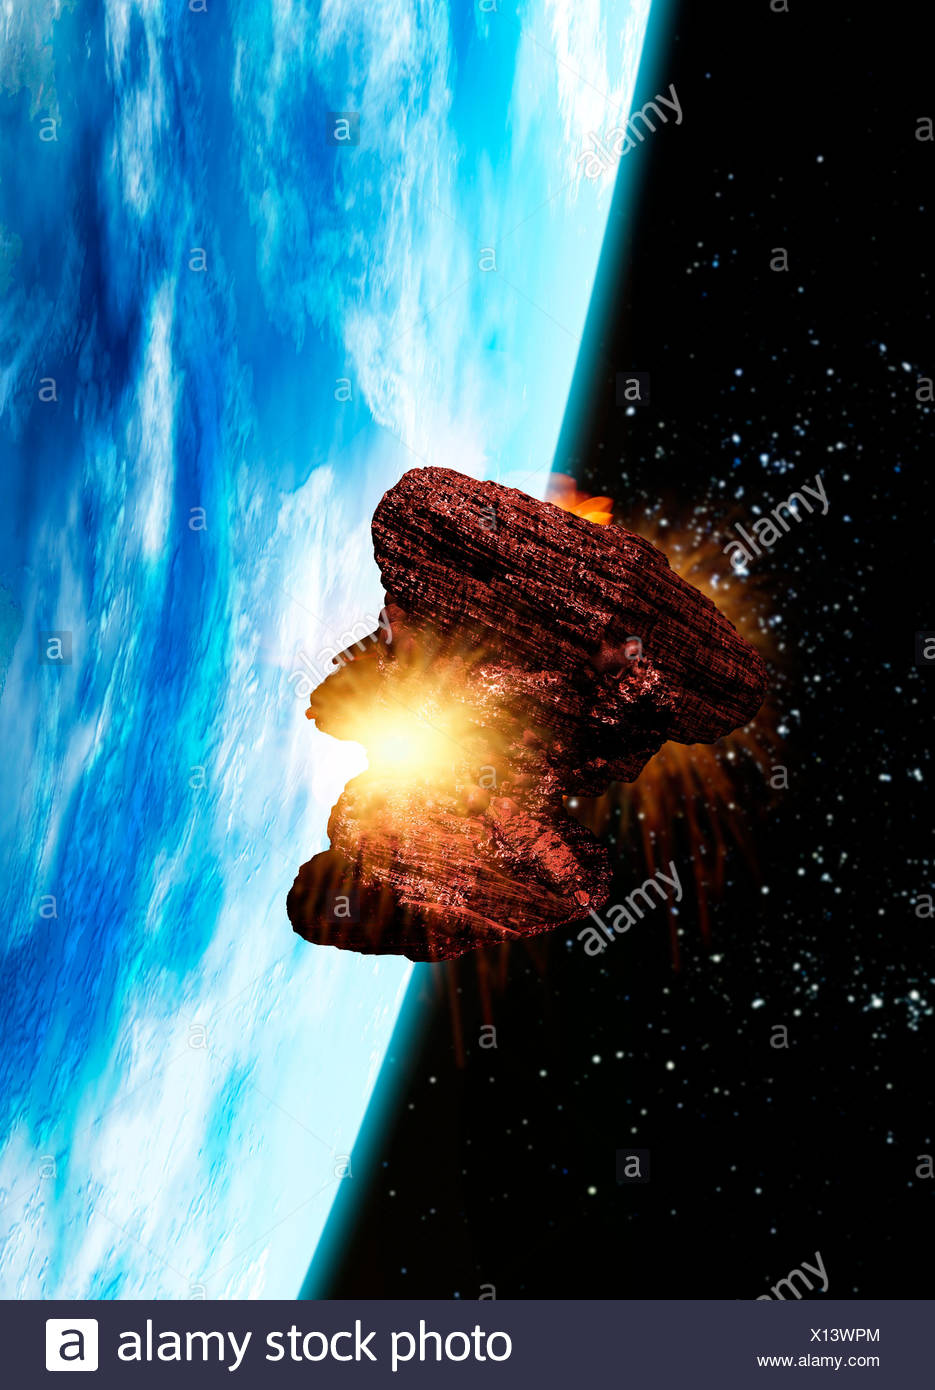 Asteroid approaching Earth, artwork Stock Photo